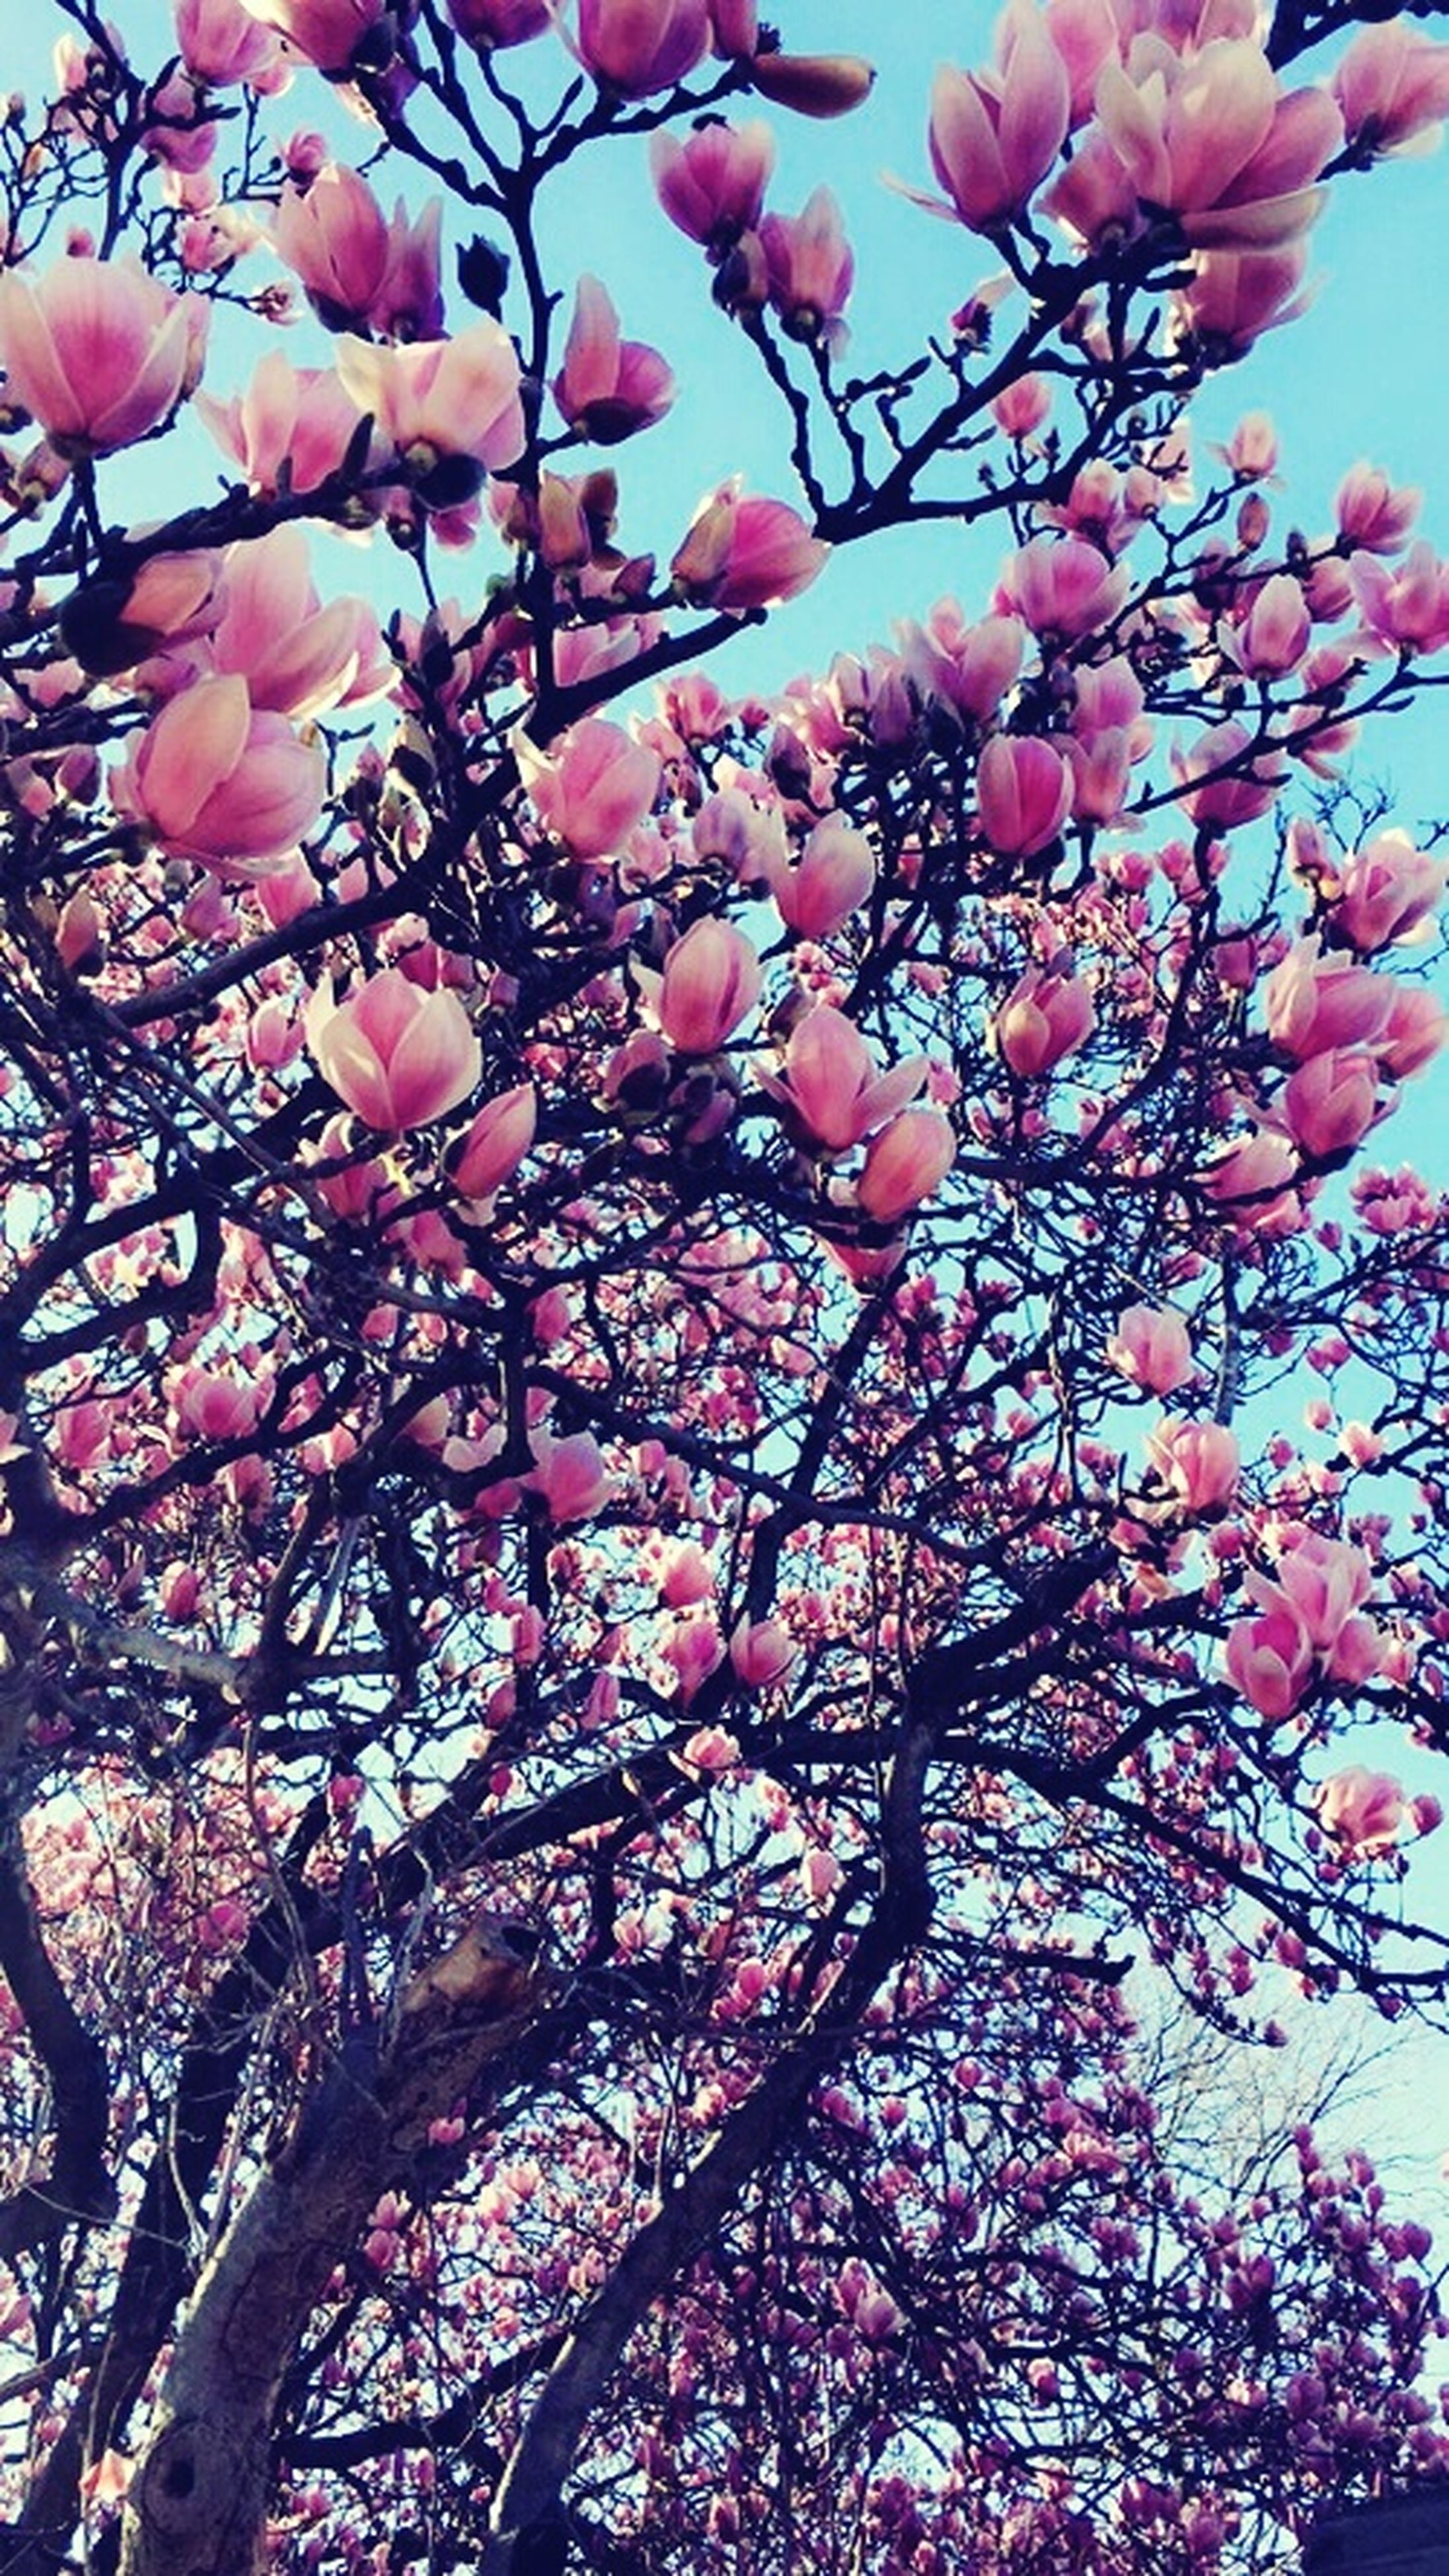 flower, branch, low angle view, tree, freshness, growth, beauty in nature, pink color, fragility, nature, blossom, cherry blossom, cherry tree, in bloom, springtime, blooming, pink, fruit tree, outdoors, abundance